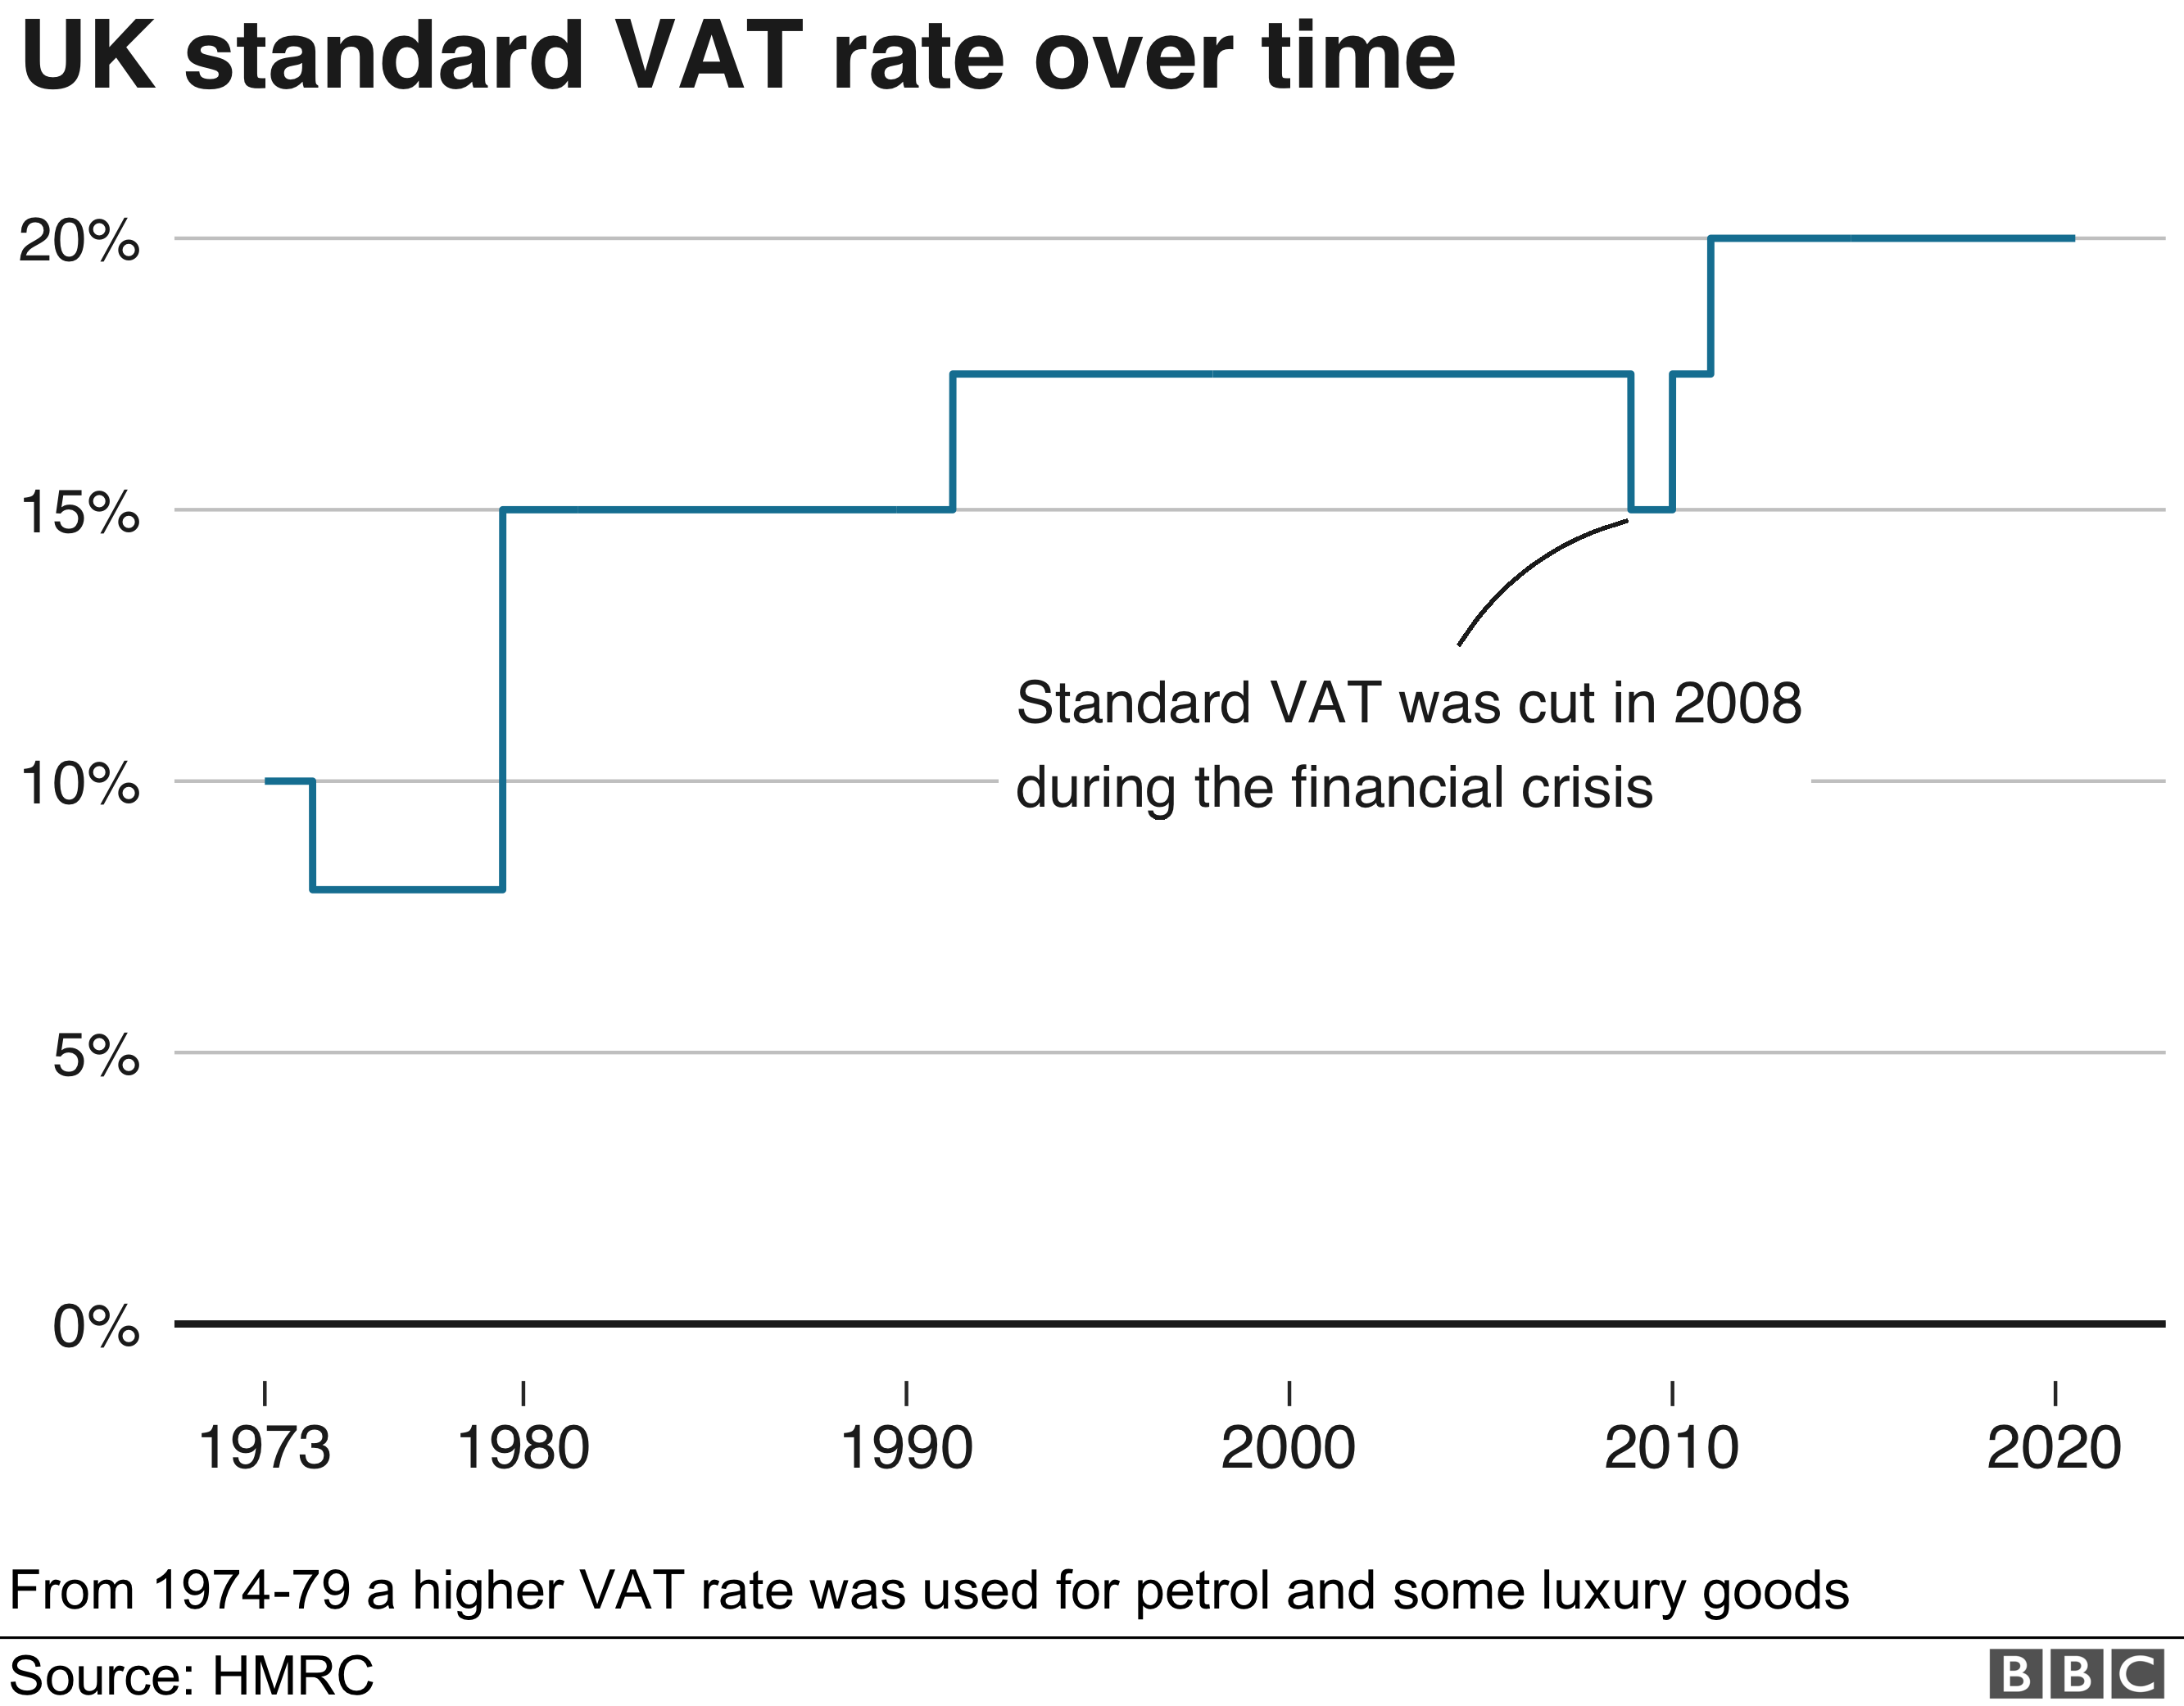 UK standard VAT rate over time